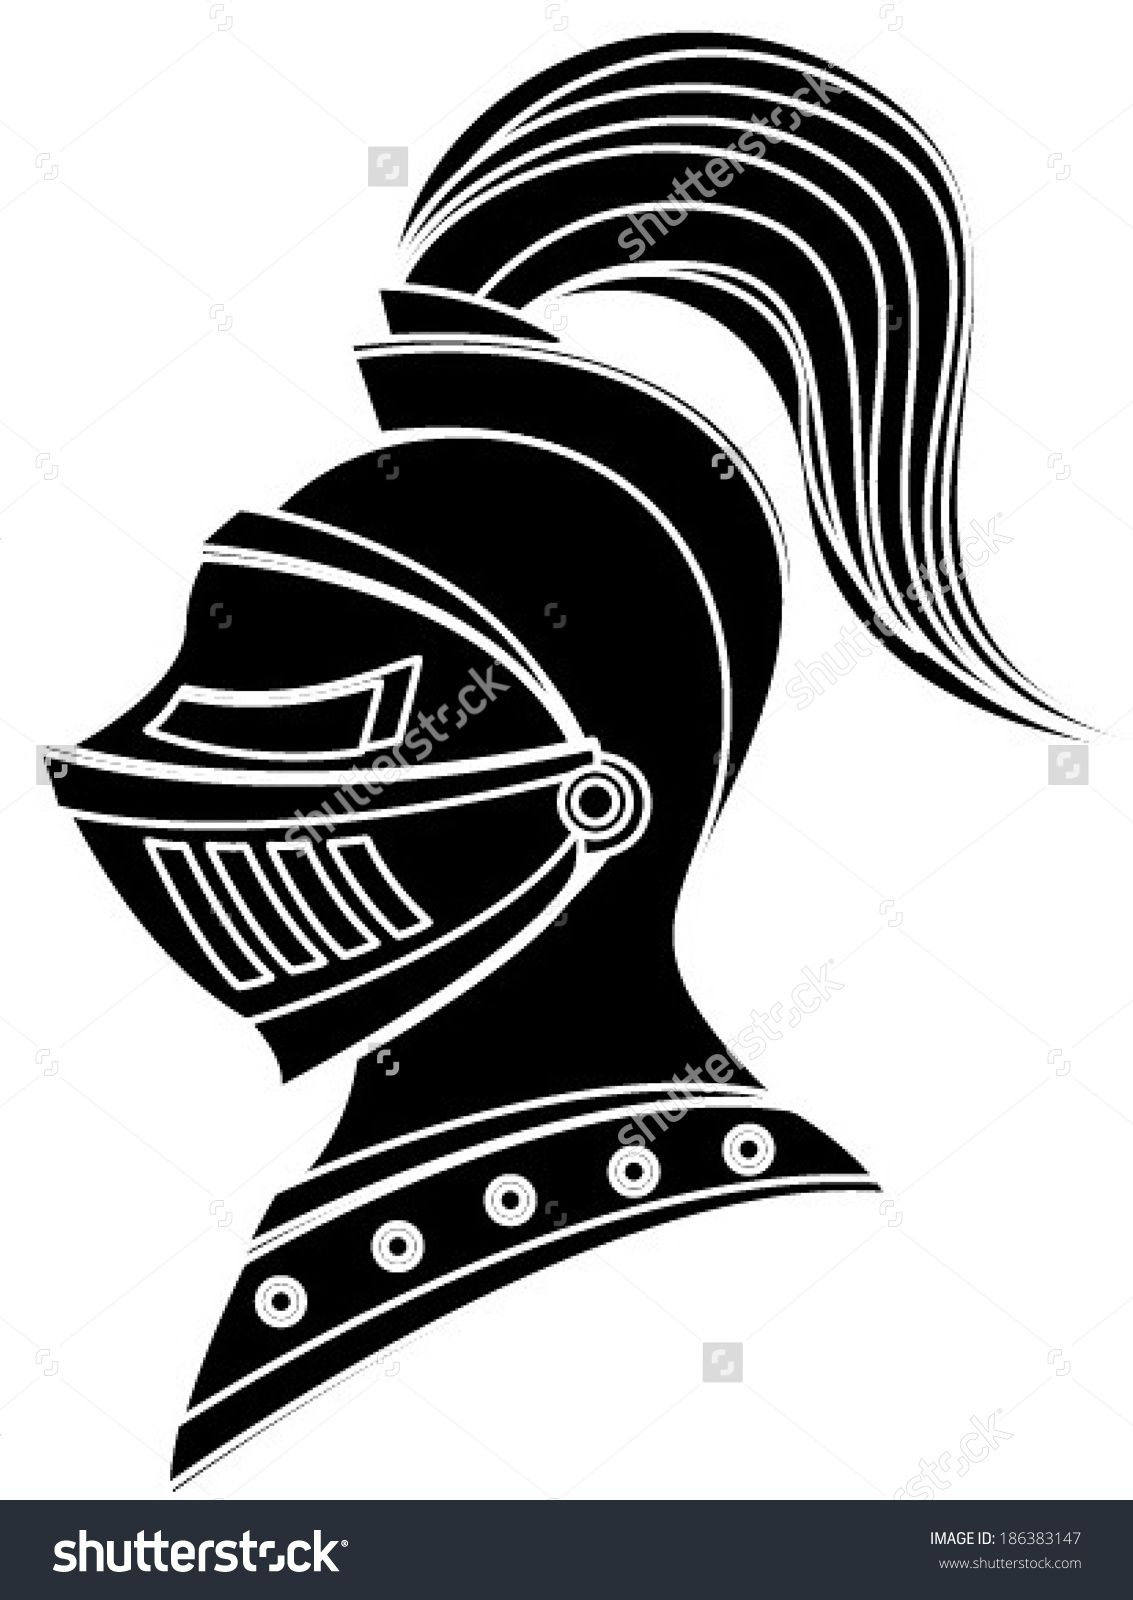 Knight helmet silhouette black and white clipart ...